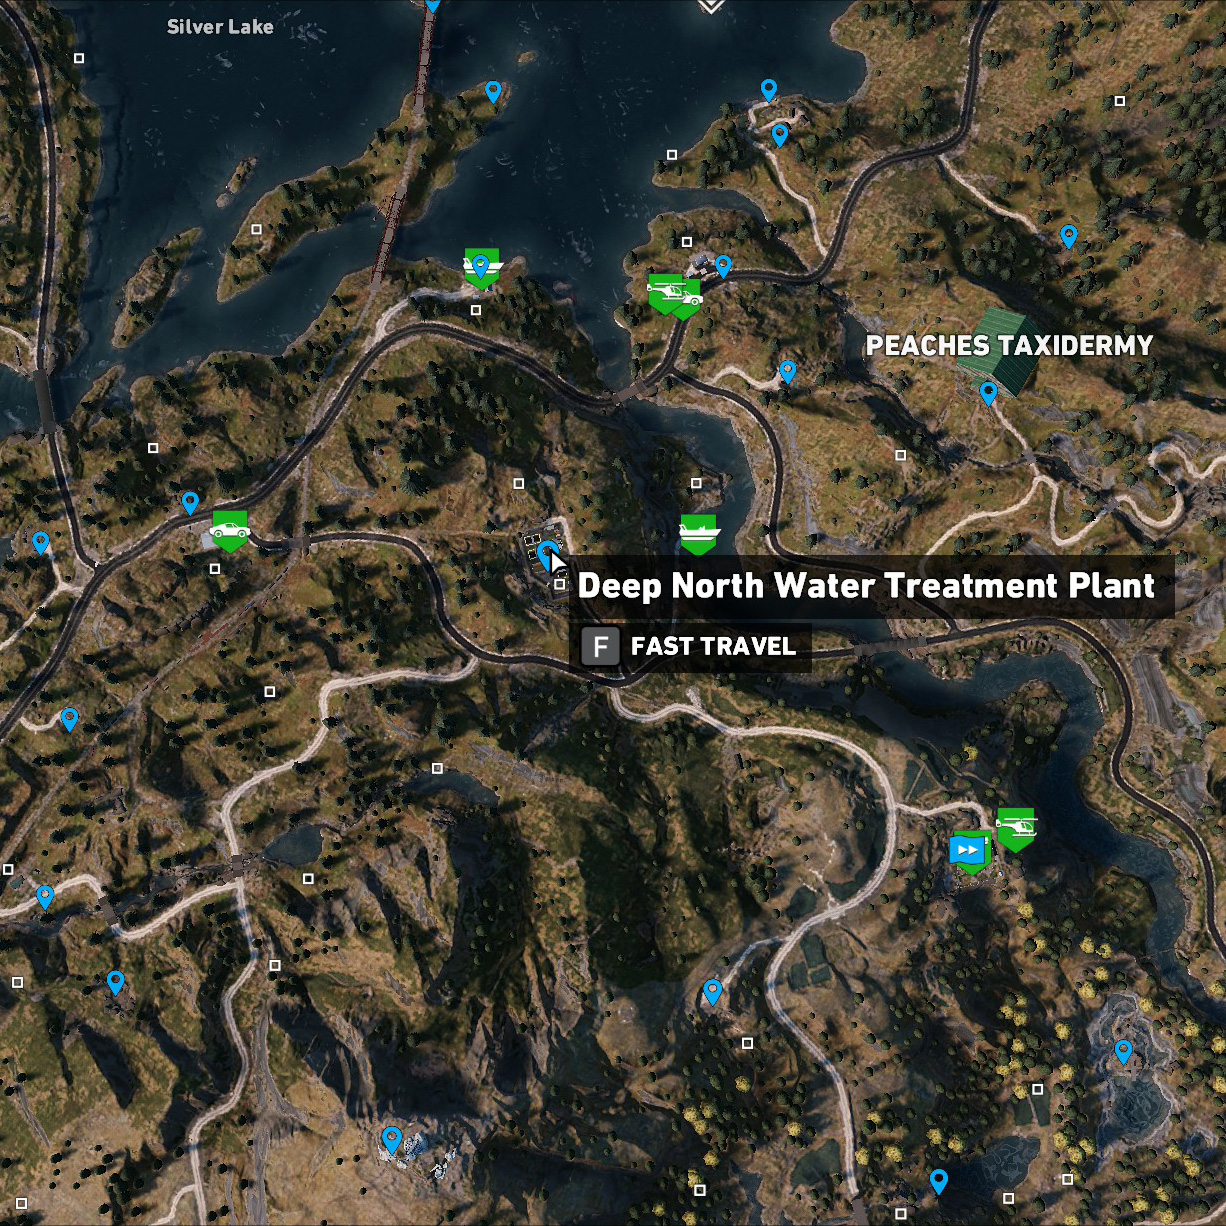 Deep North Water Treatment Plant